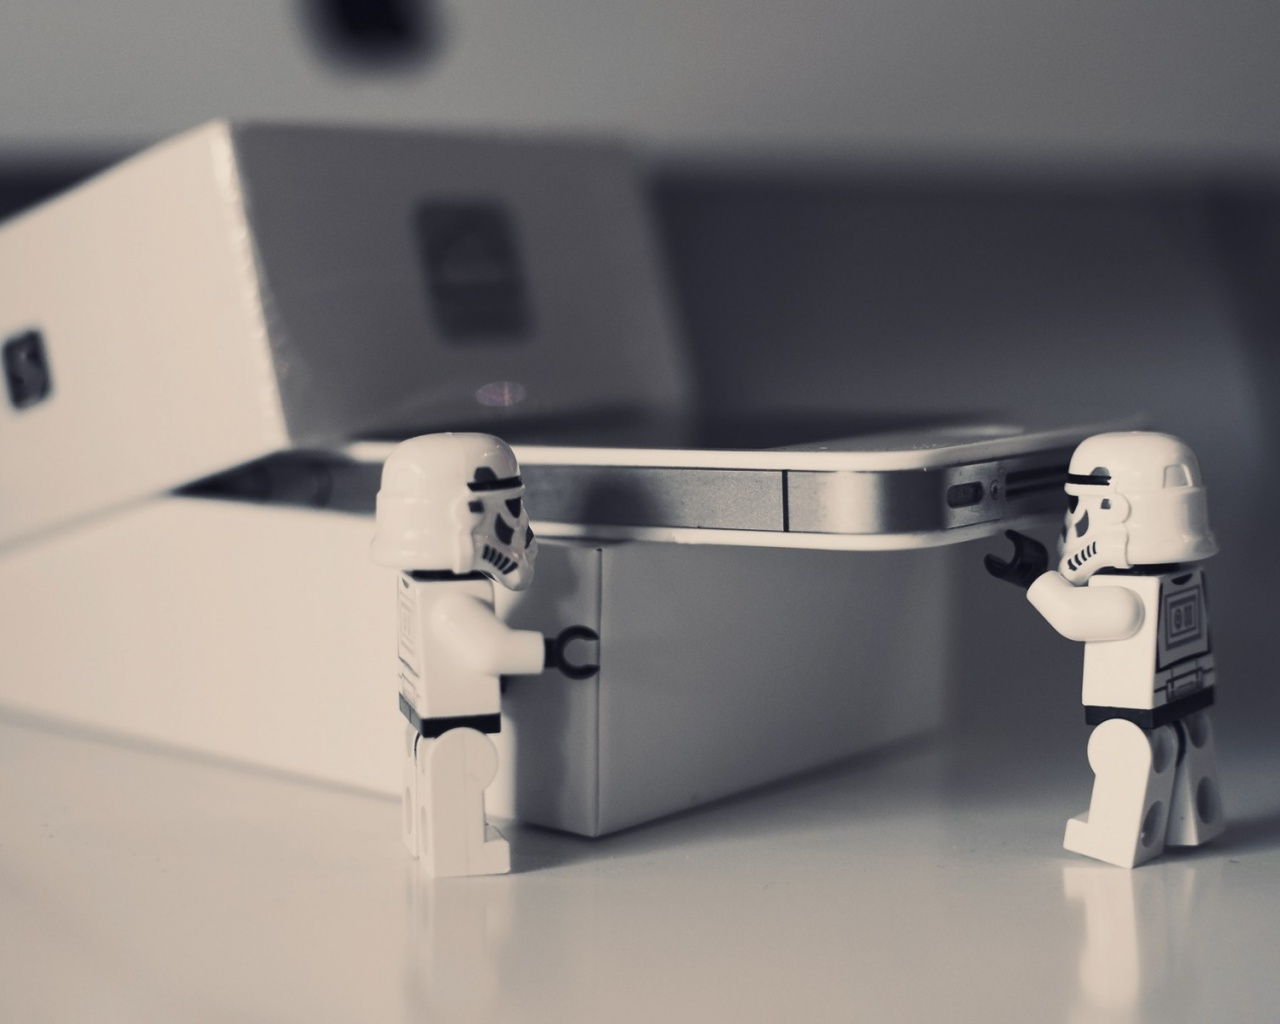 lego star wars iphone 4 unboxing